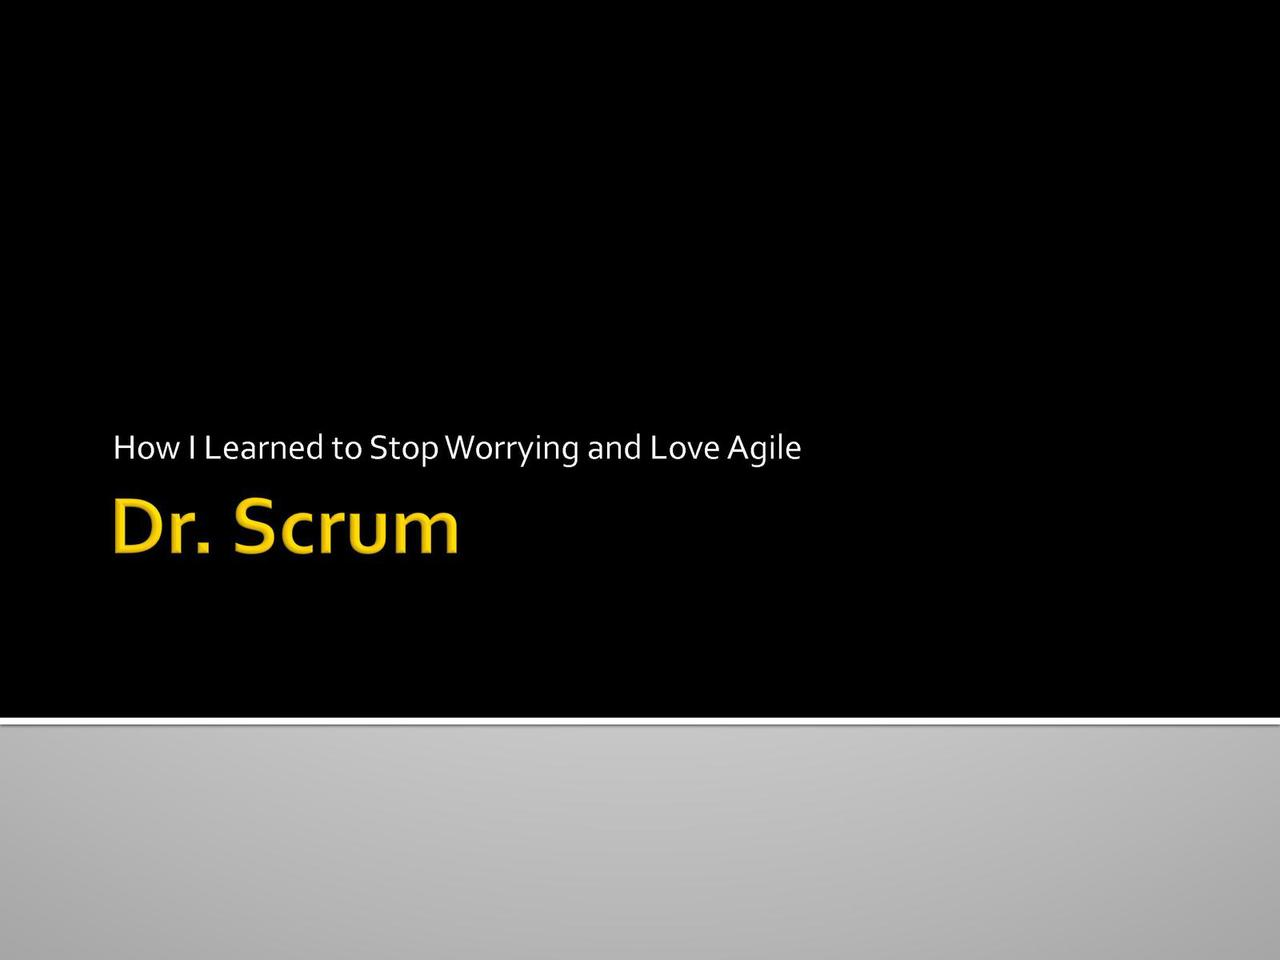 Dr. Scrum